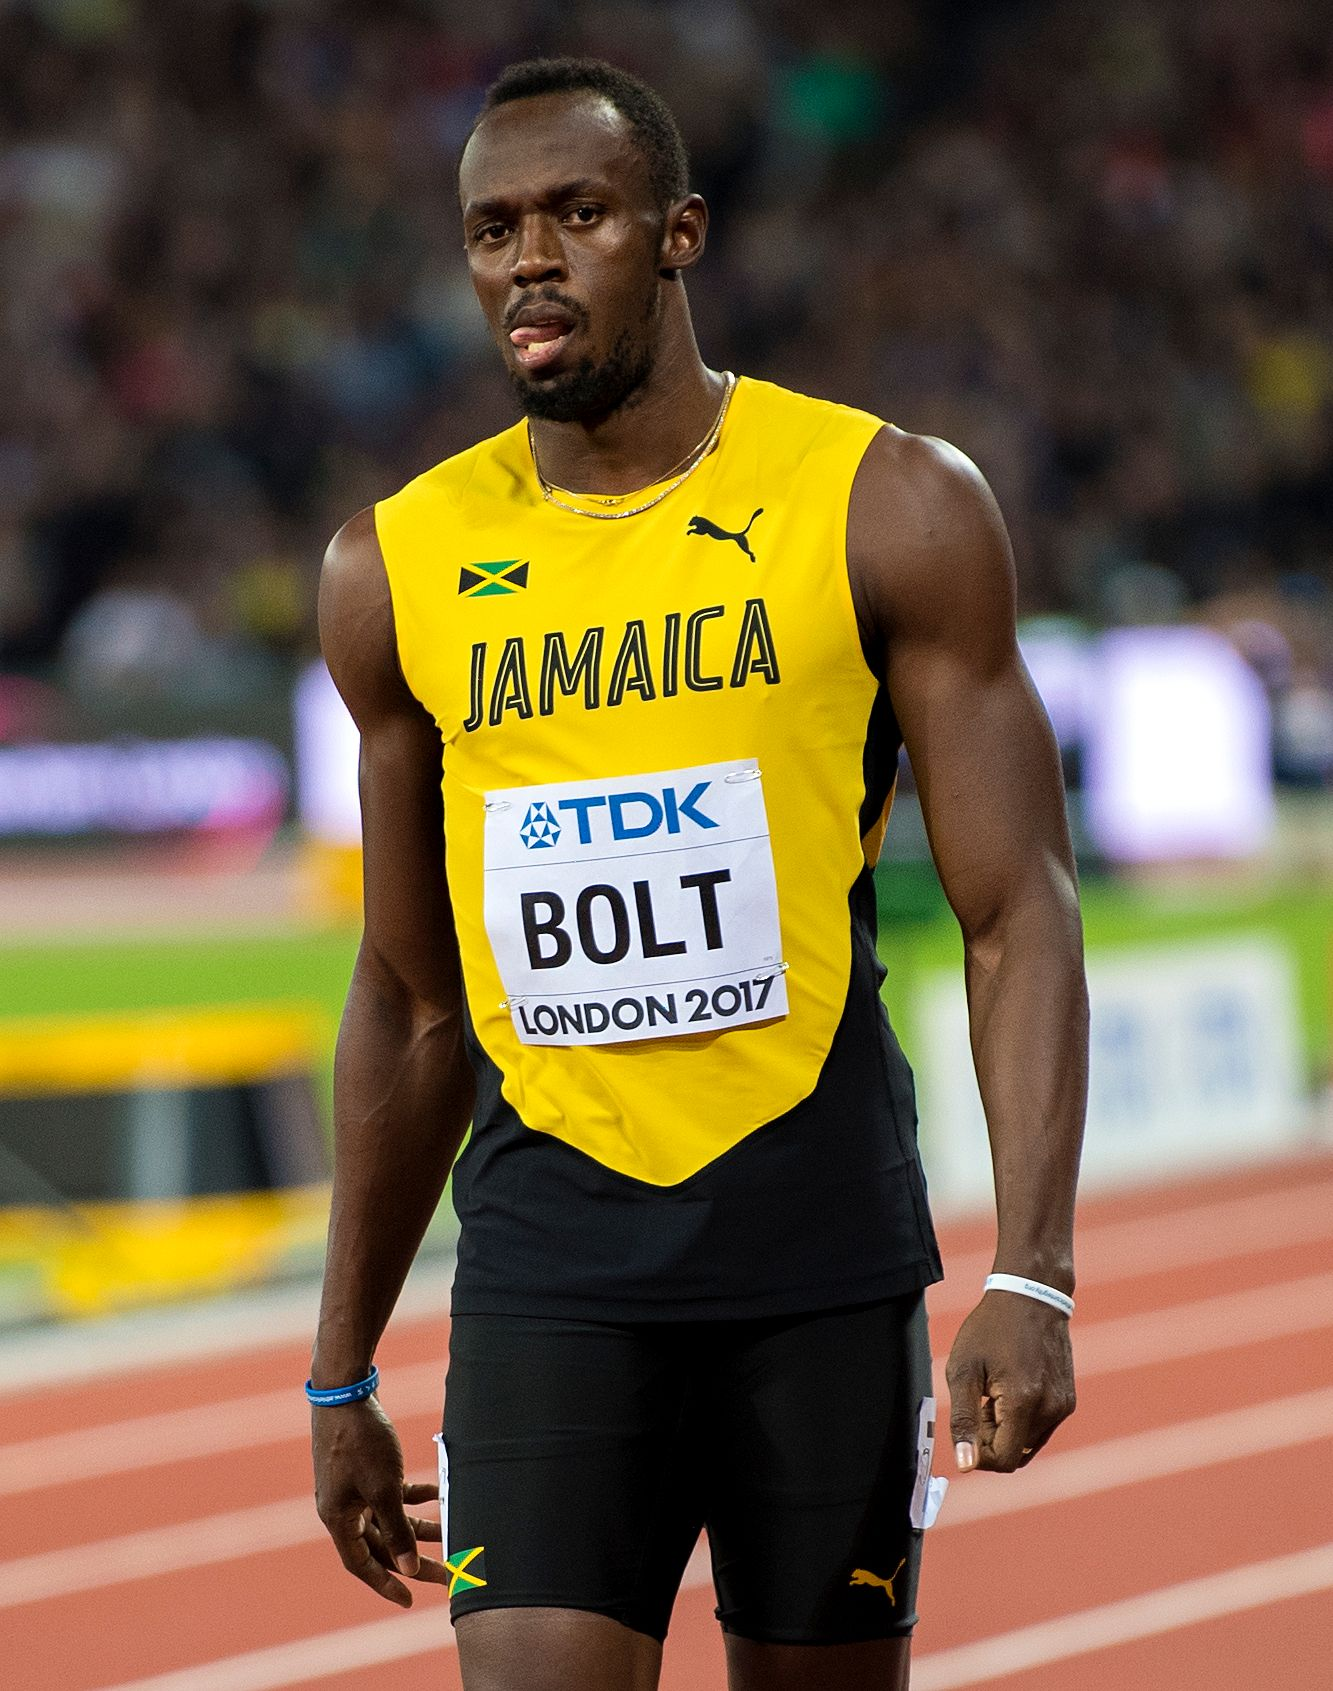 2017 IAAF WC London day 1 bolt look jeff cohen photo  3968.jpg